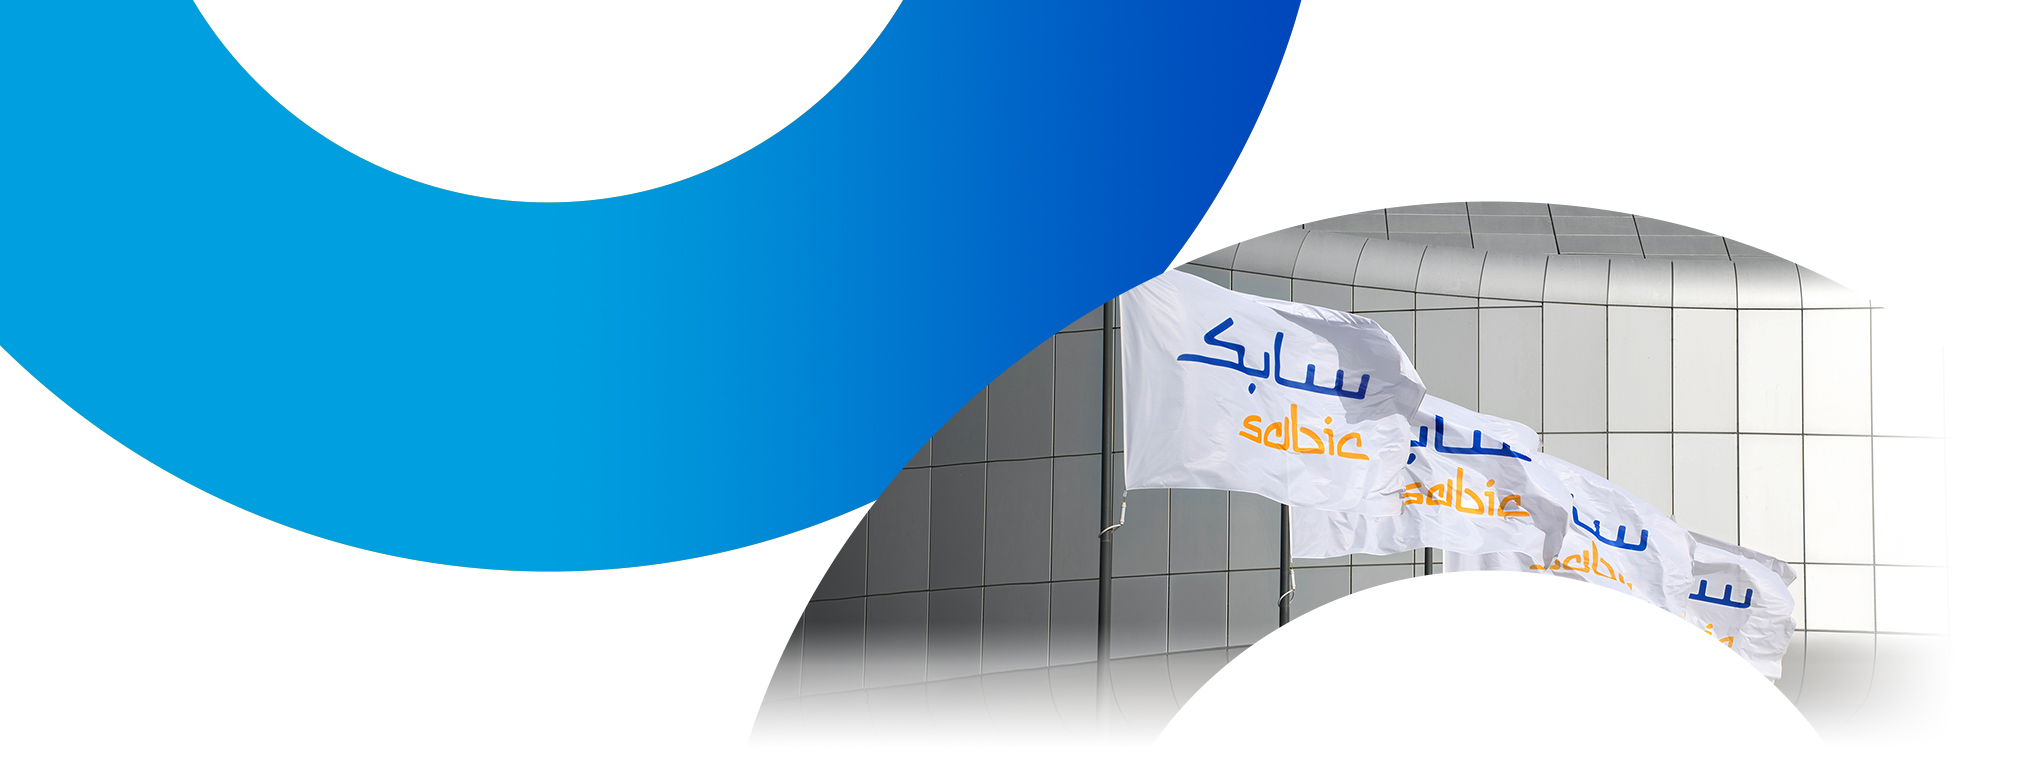 SABIC flags in the wind